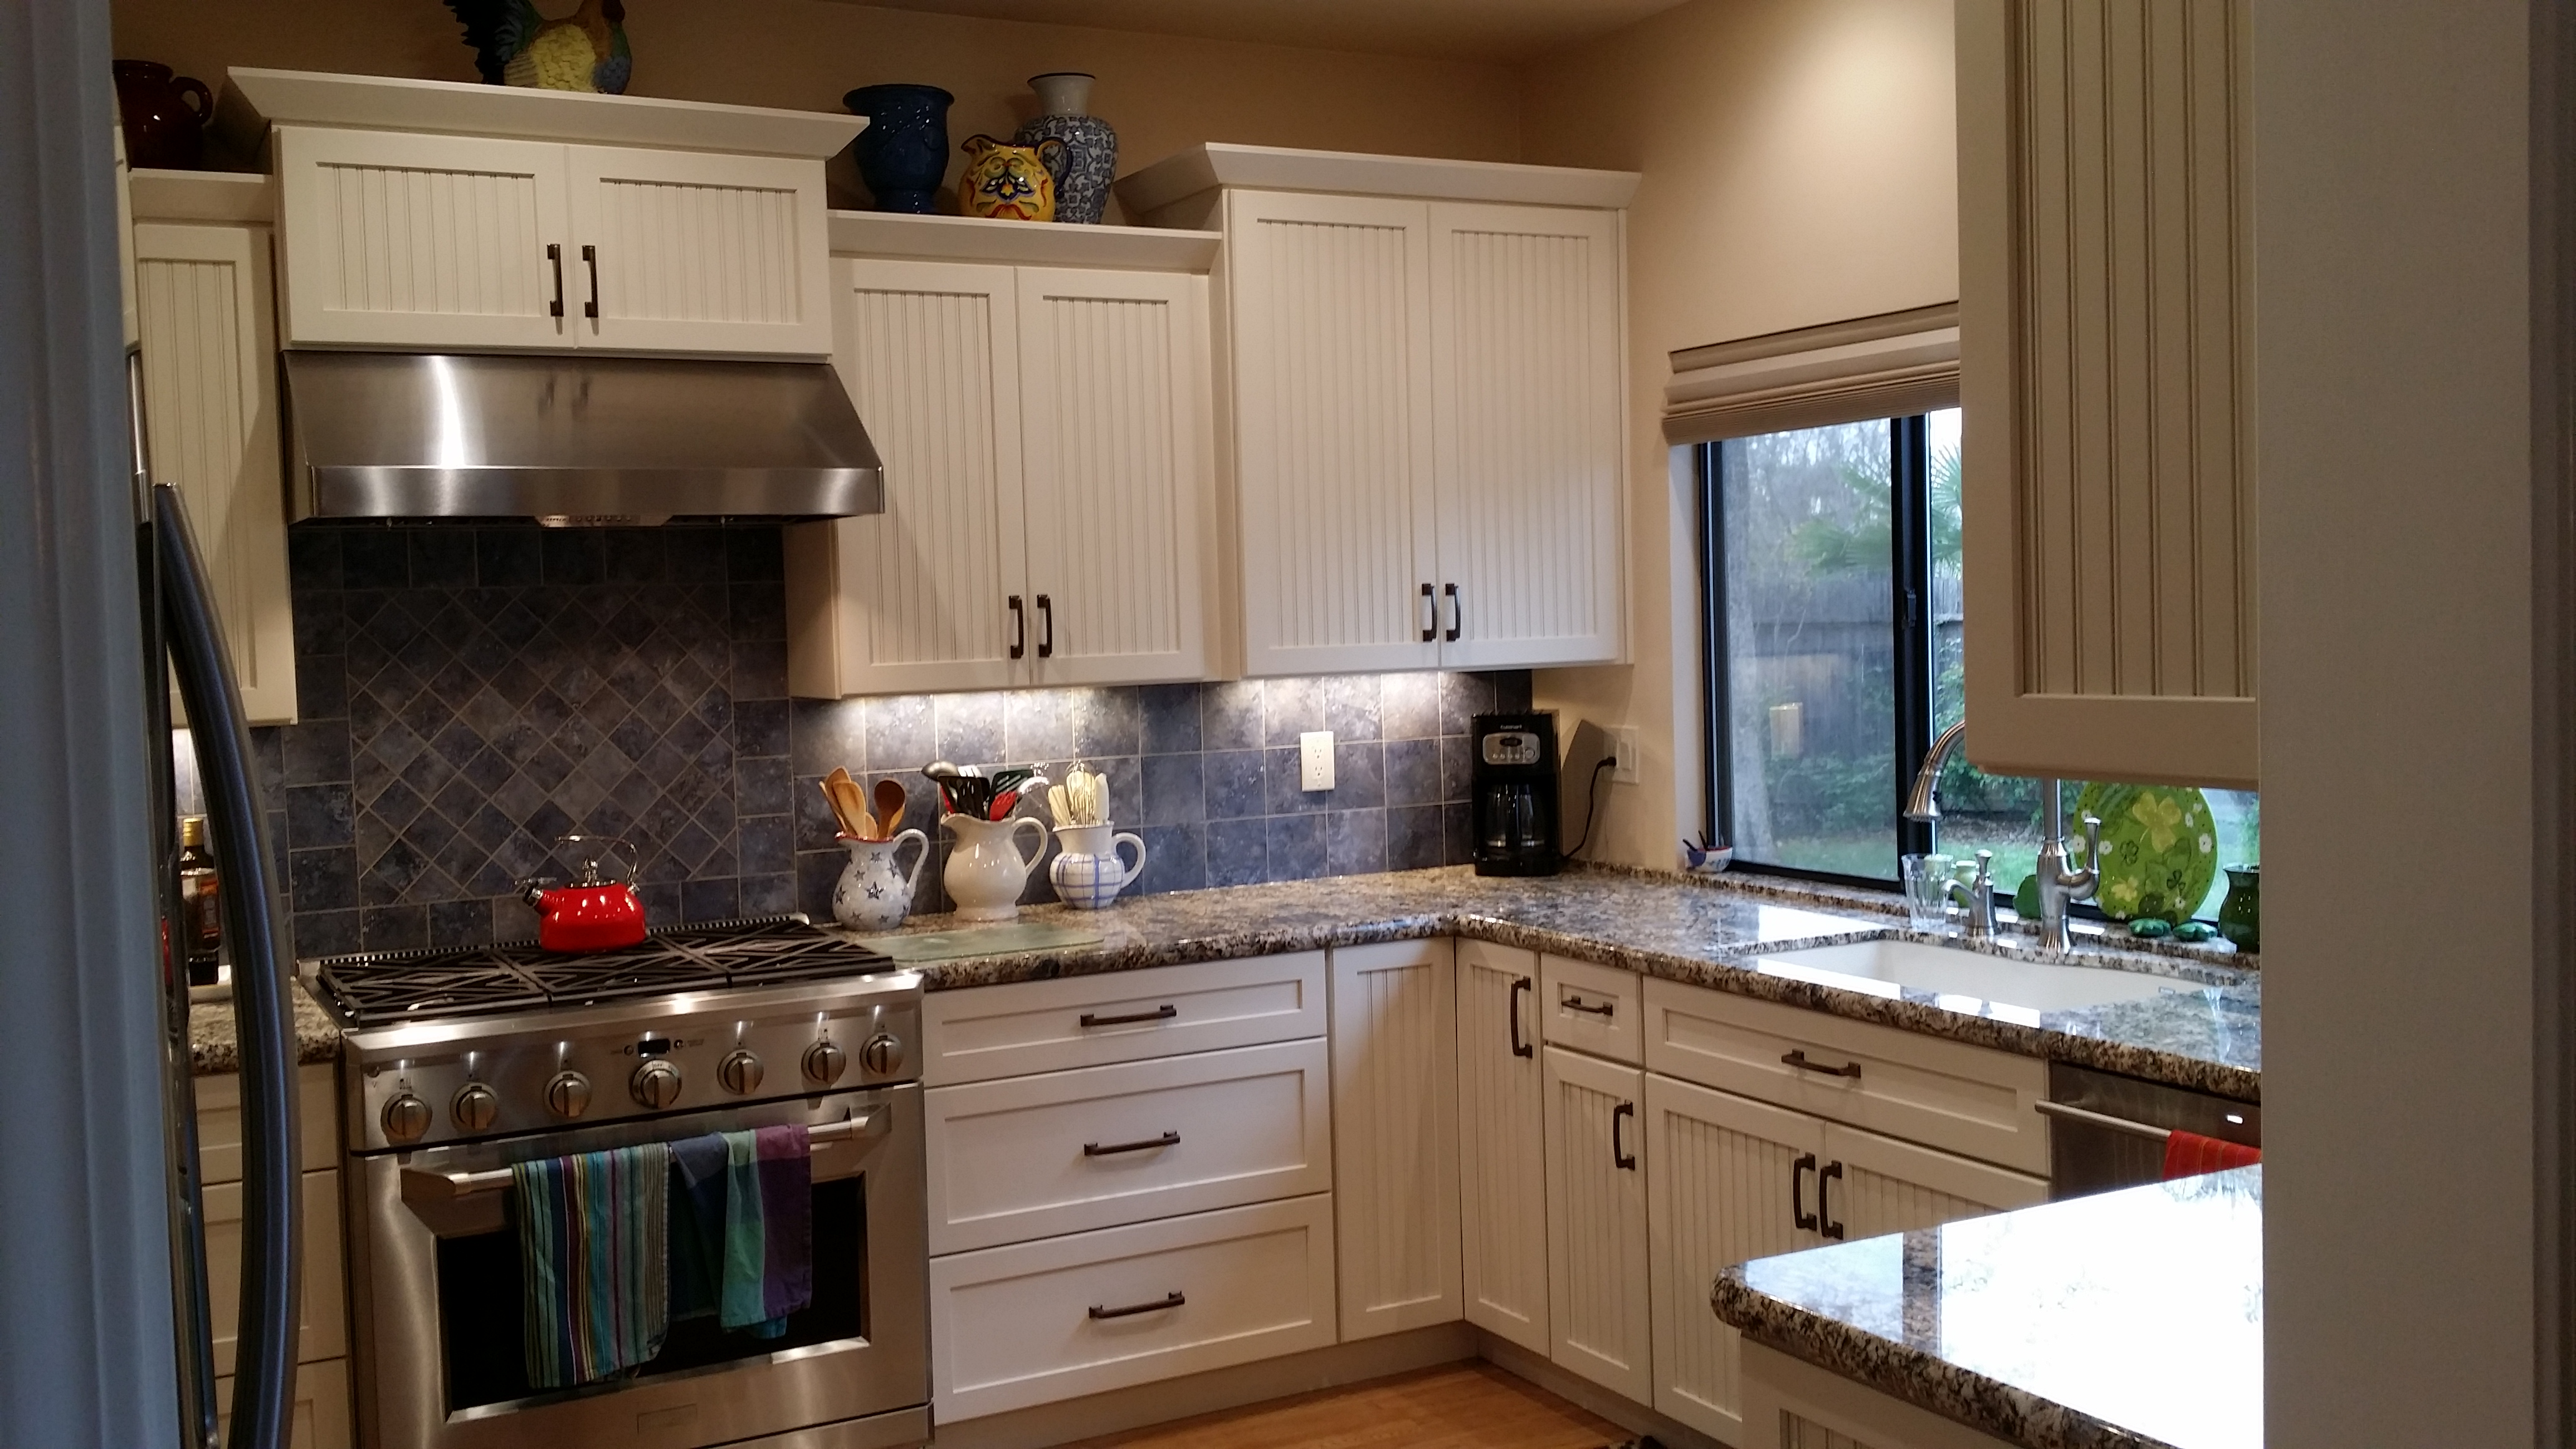 Stainless range and hood surrounded by white cabinets and grey countertop